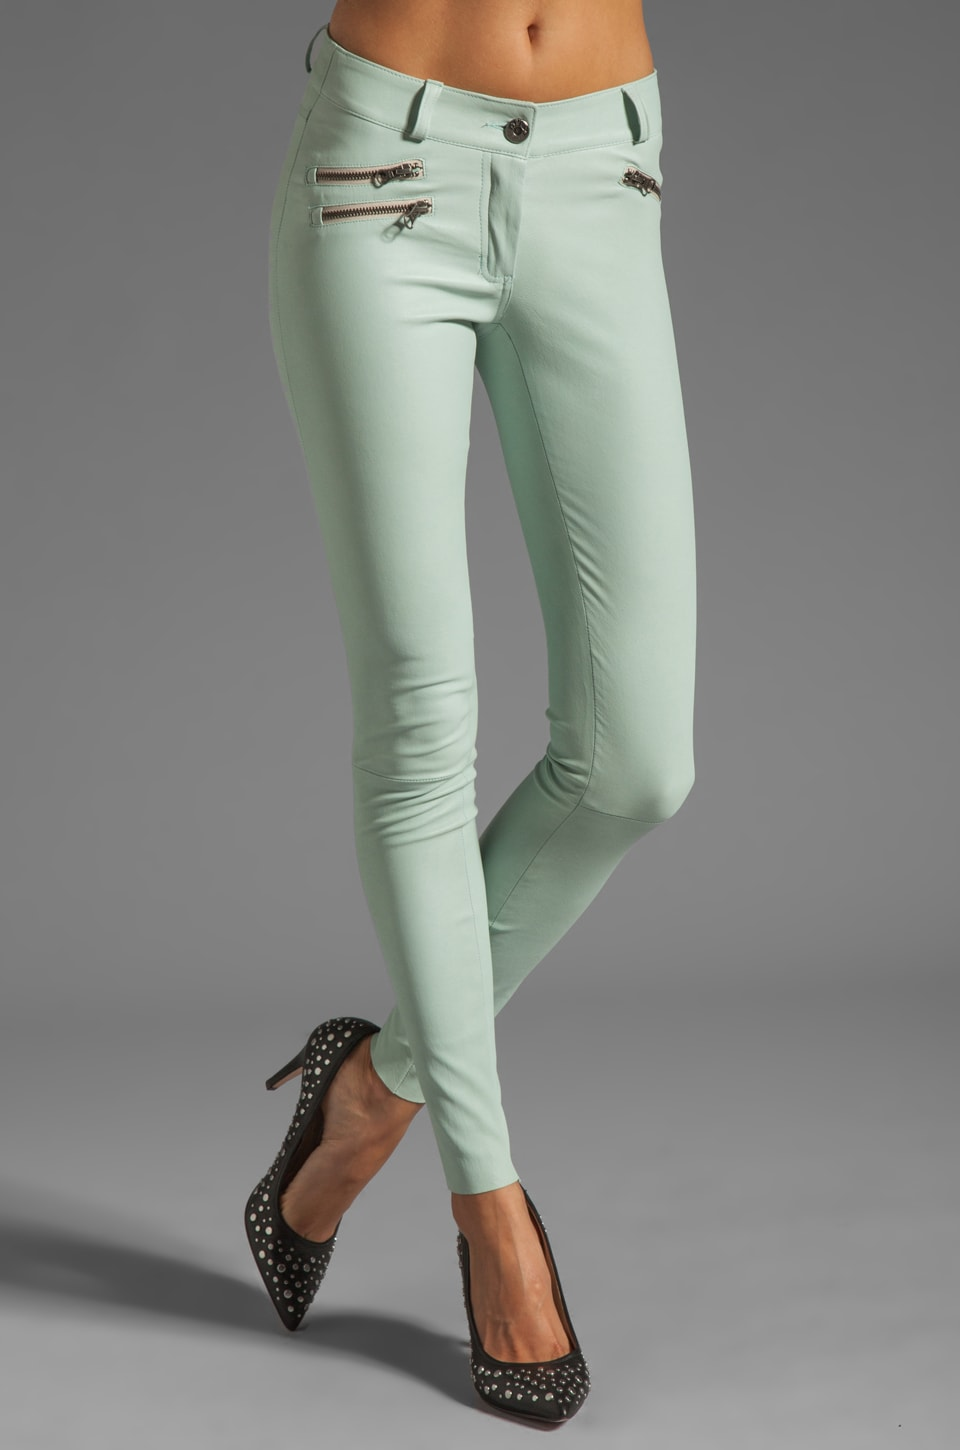 Mackage Miki Stretch Leather Pant in Mint